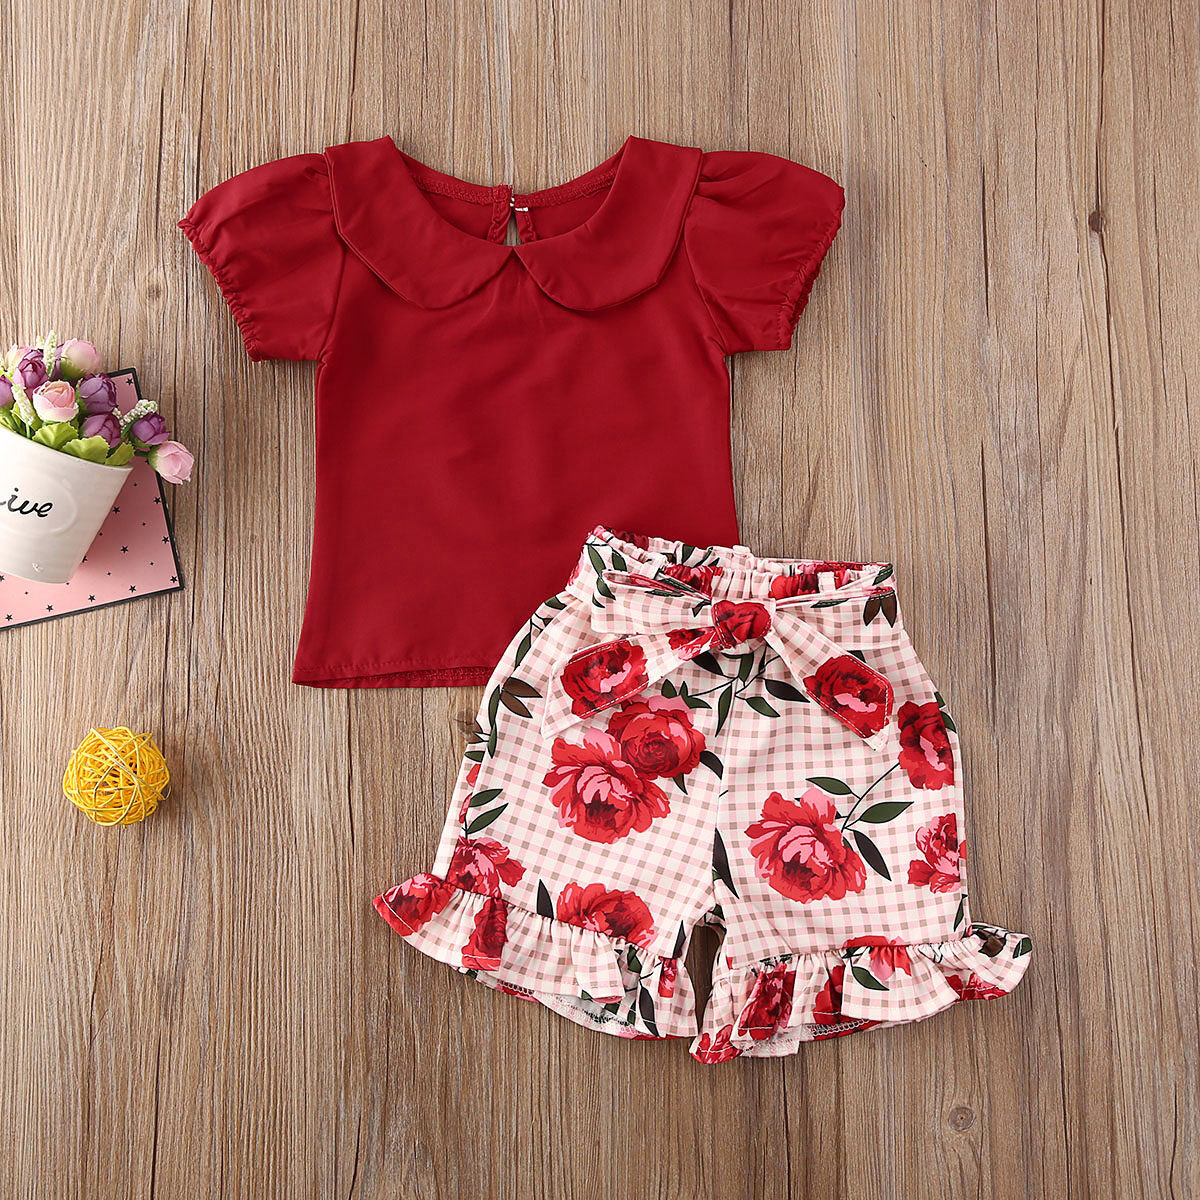 Fashion Toddler Baby Girls Floral Short Sleeve T-Shirt Top Summer Shirts Clothes